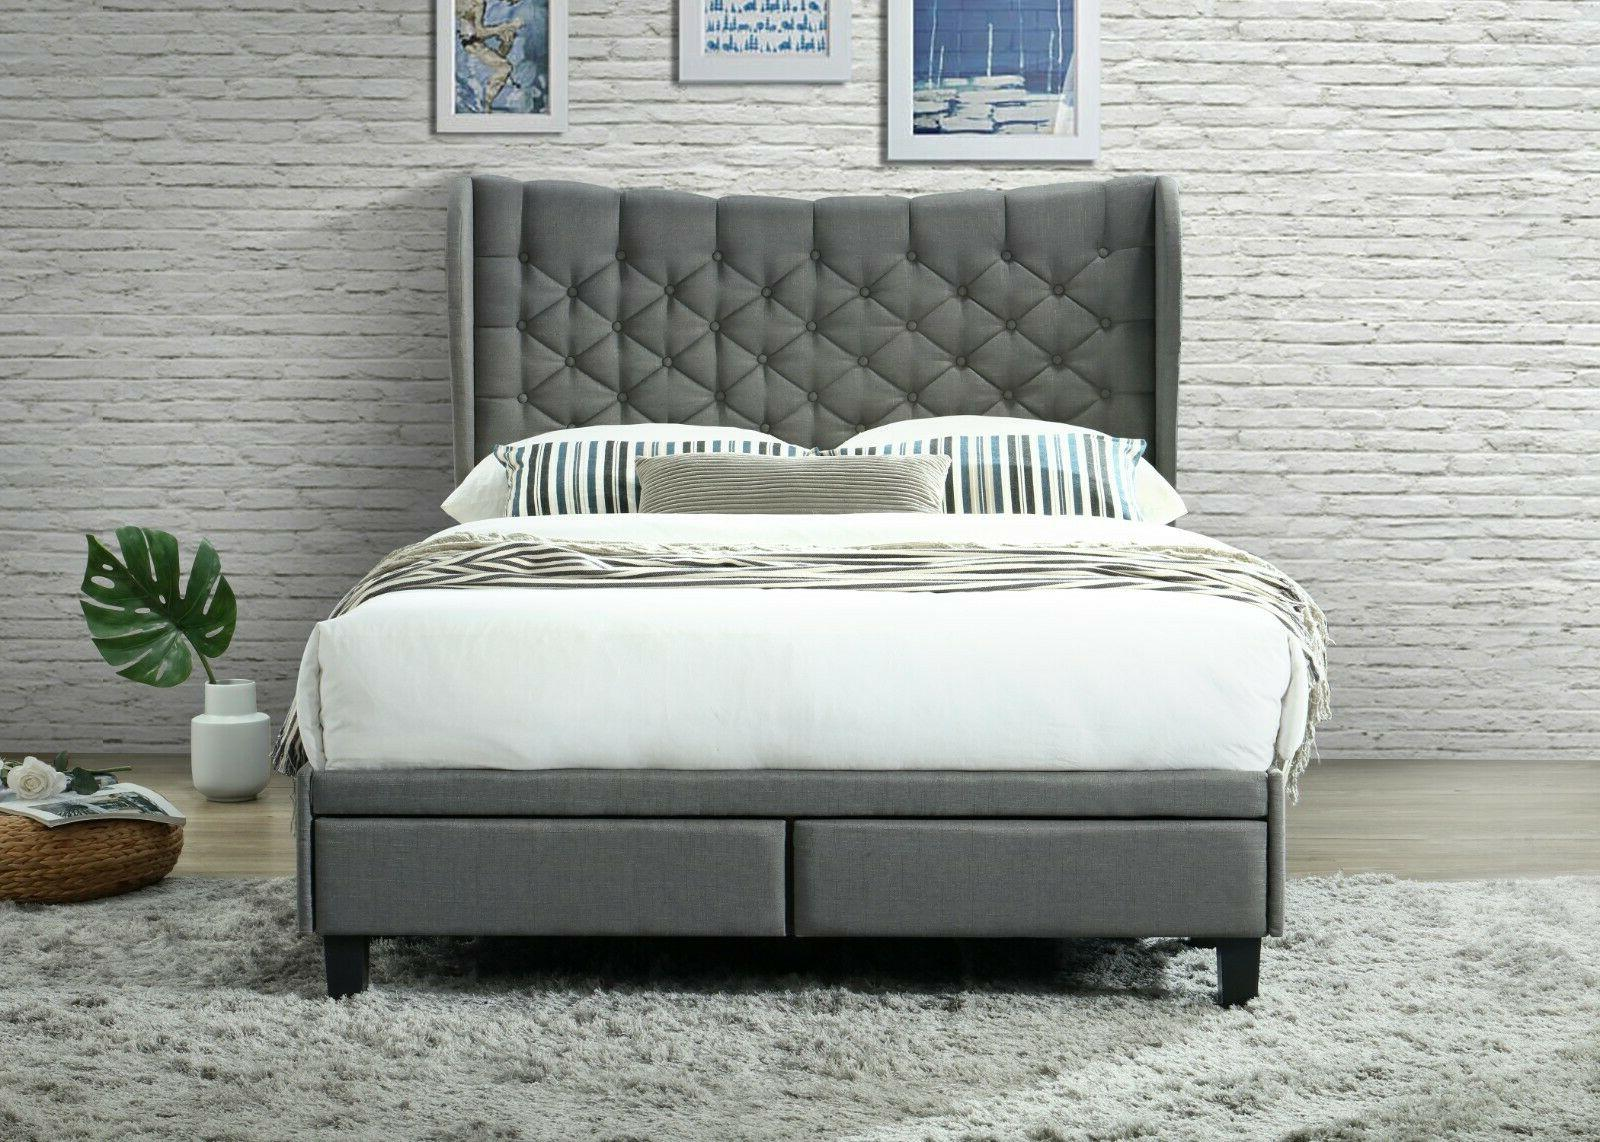 Upholstered Bed With Headboard 2 Storage Drawers